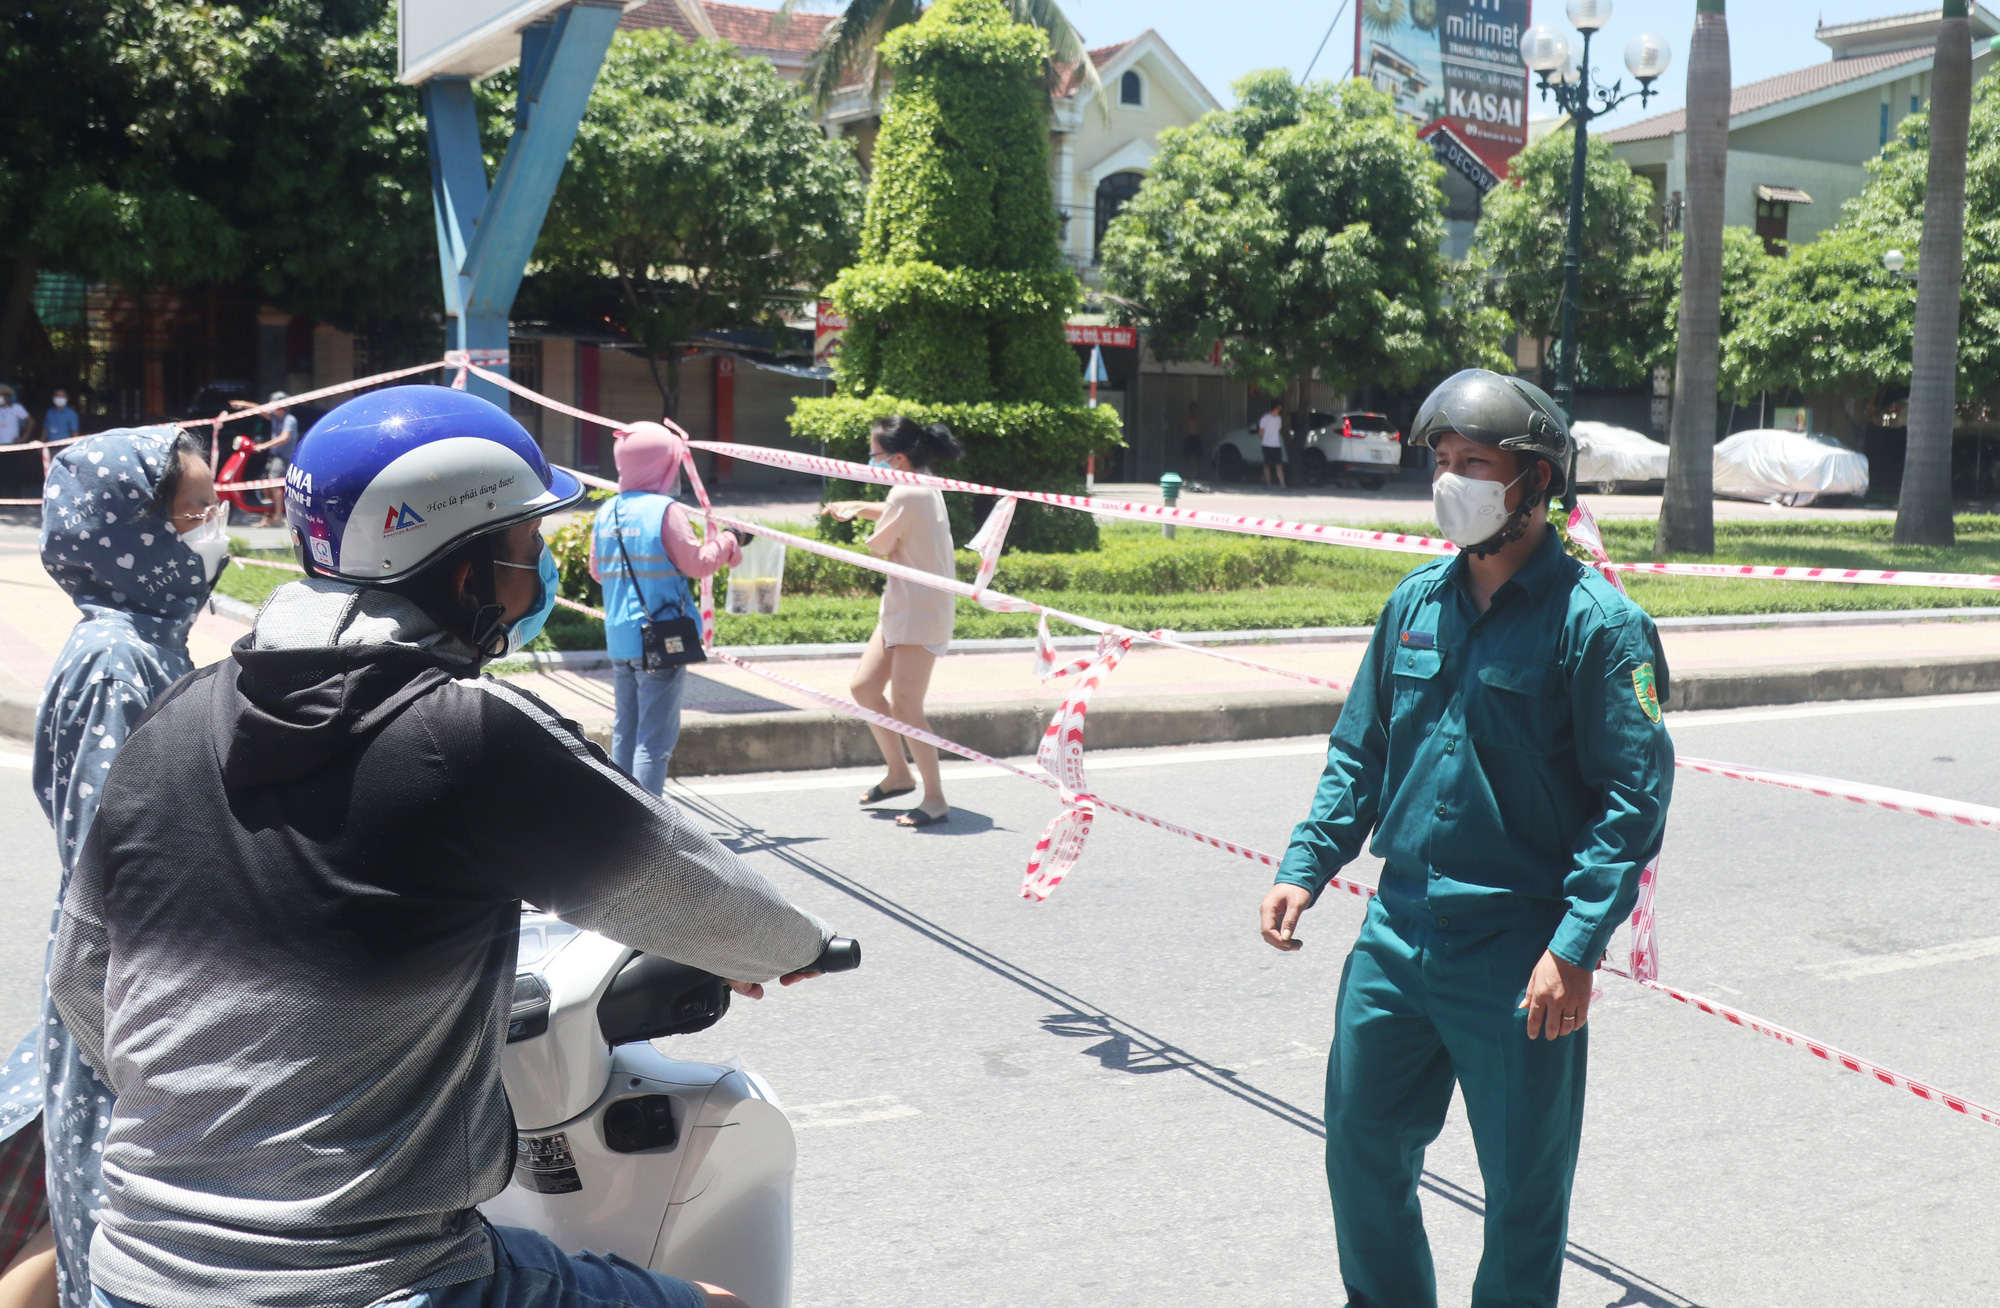 Days-long motorbike trips the only option for stranded Vietnamese to return home amidst pandemic